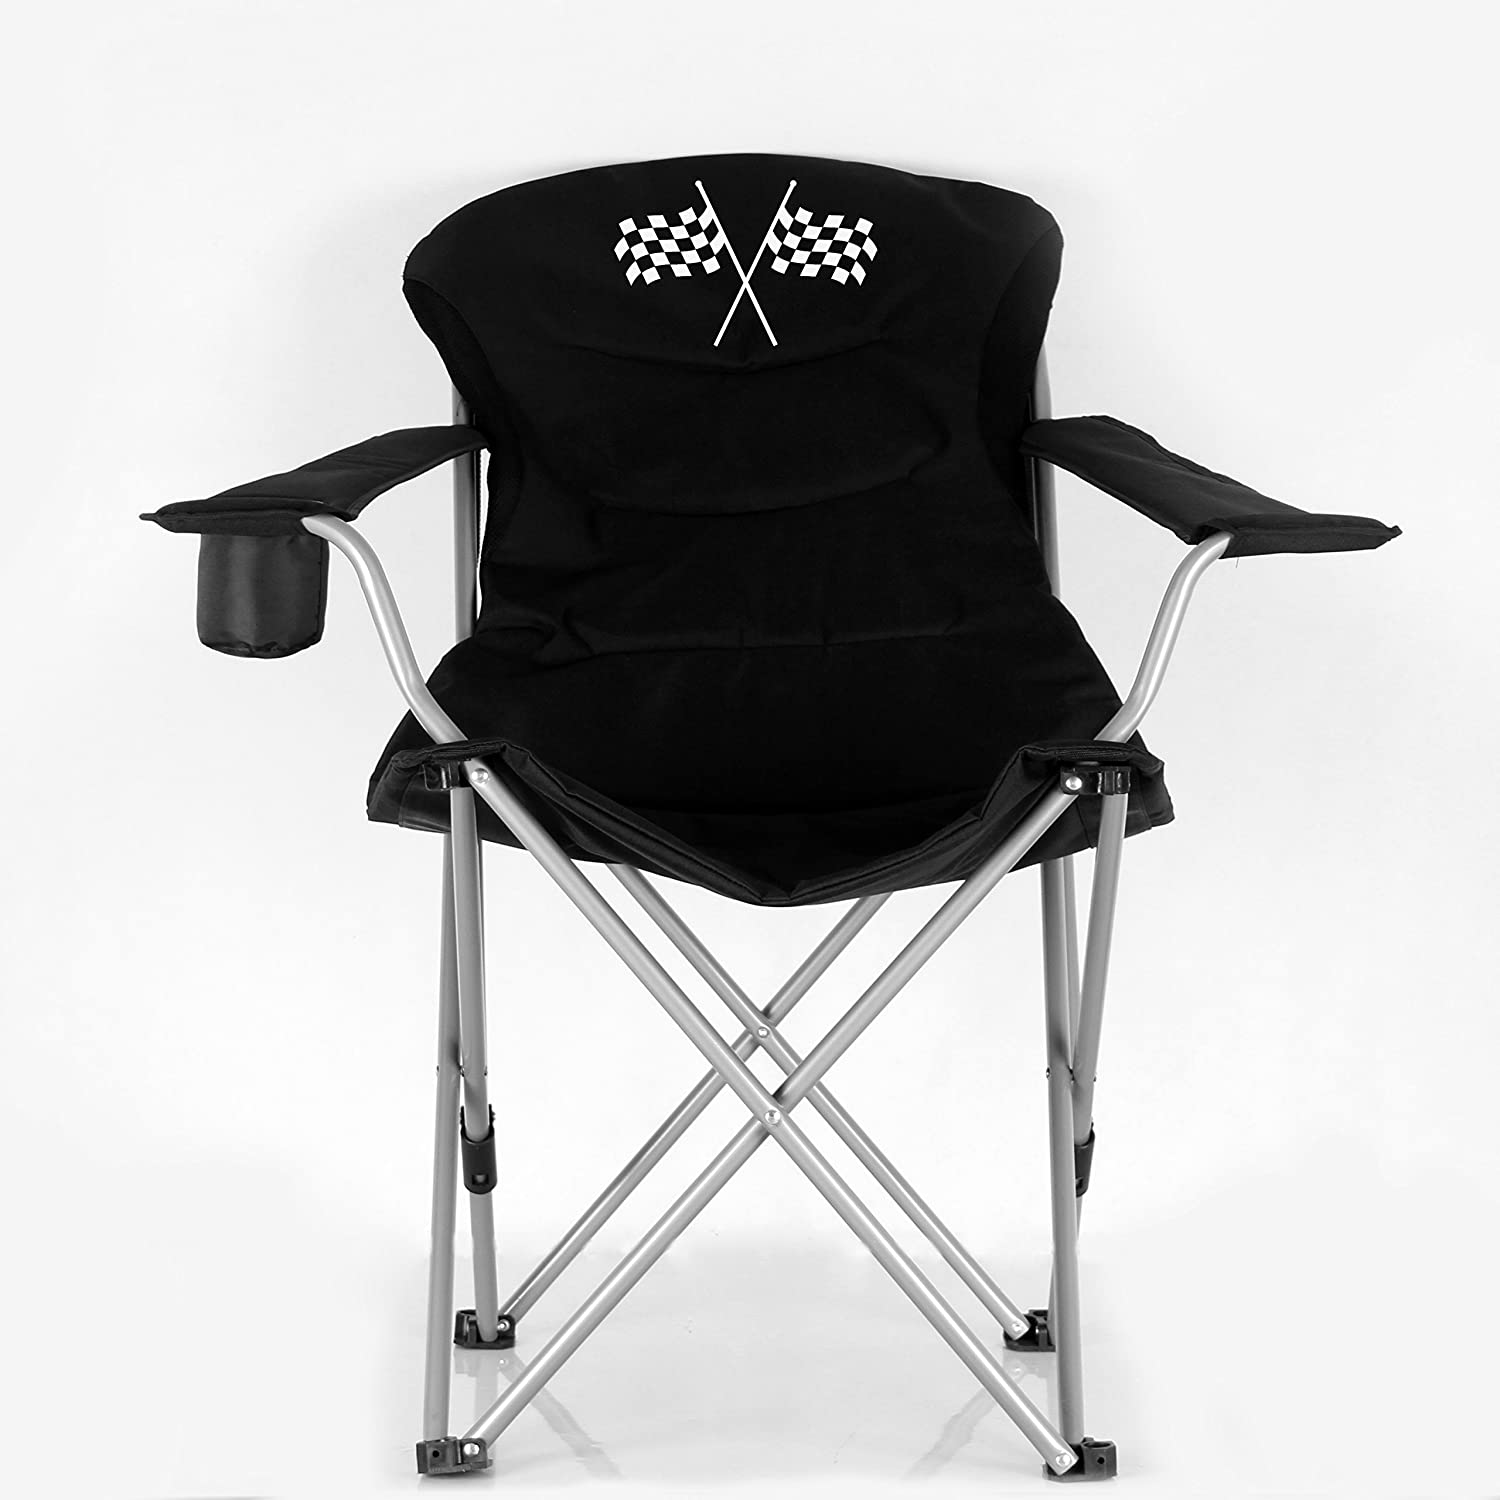 Stylish Camping Black/Flag Logo Folding Reclining Outdoor Sports Camping Chair 36029 : Sports & Outdoors